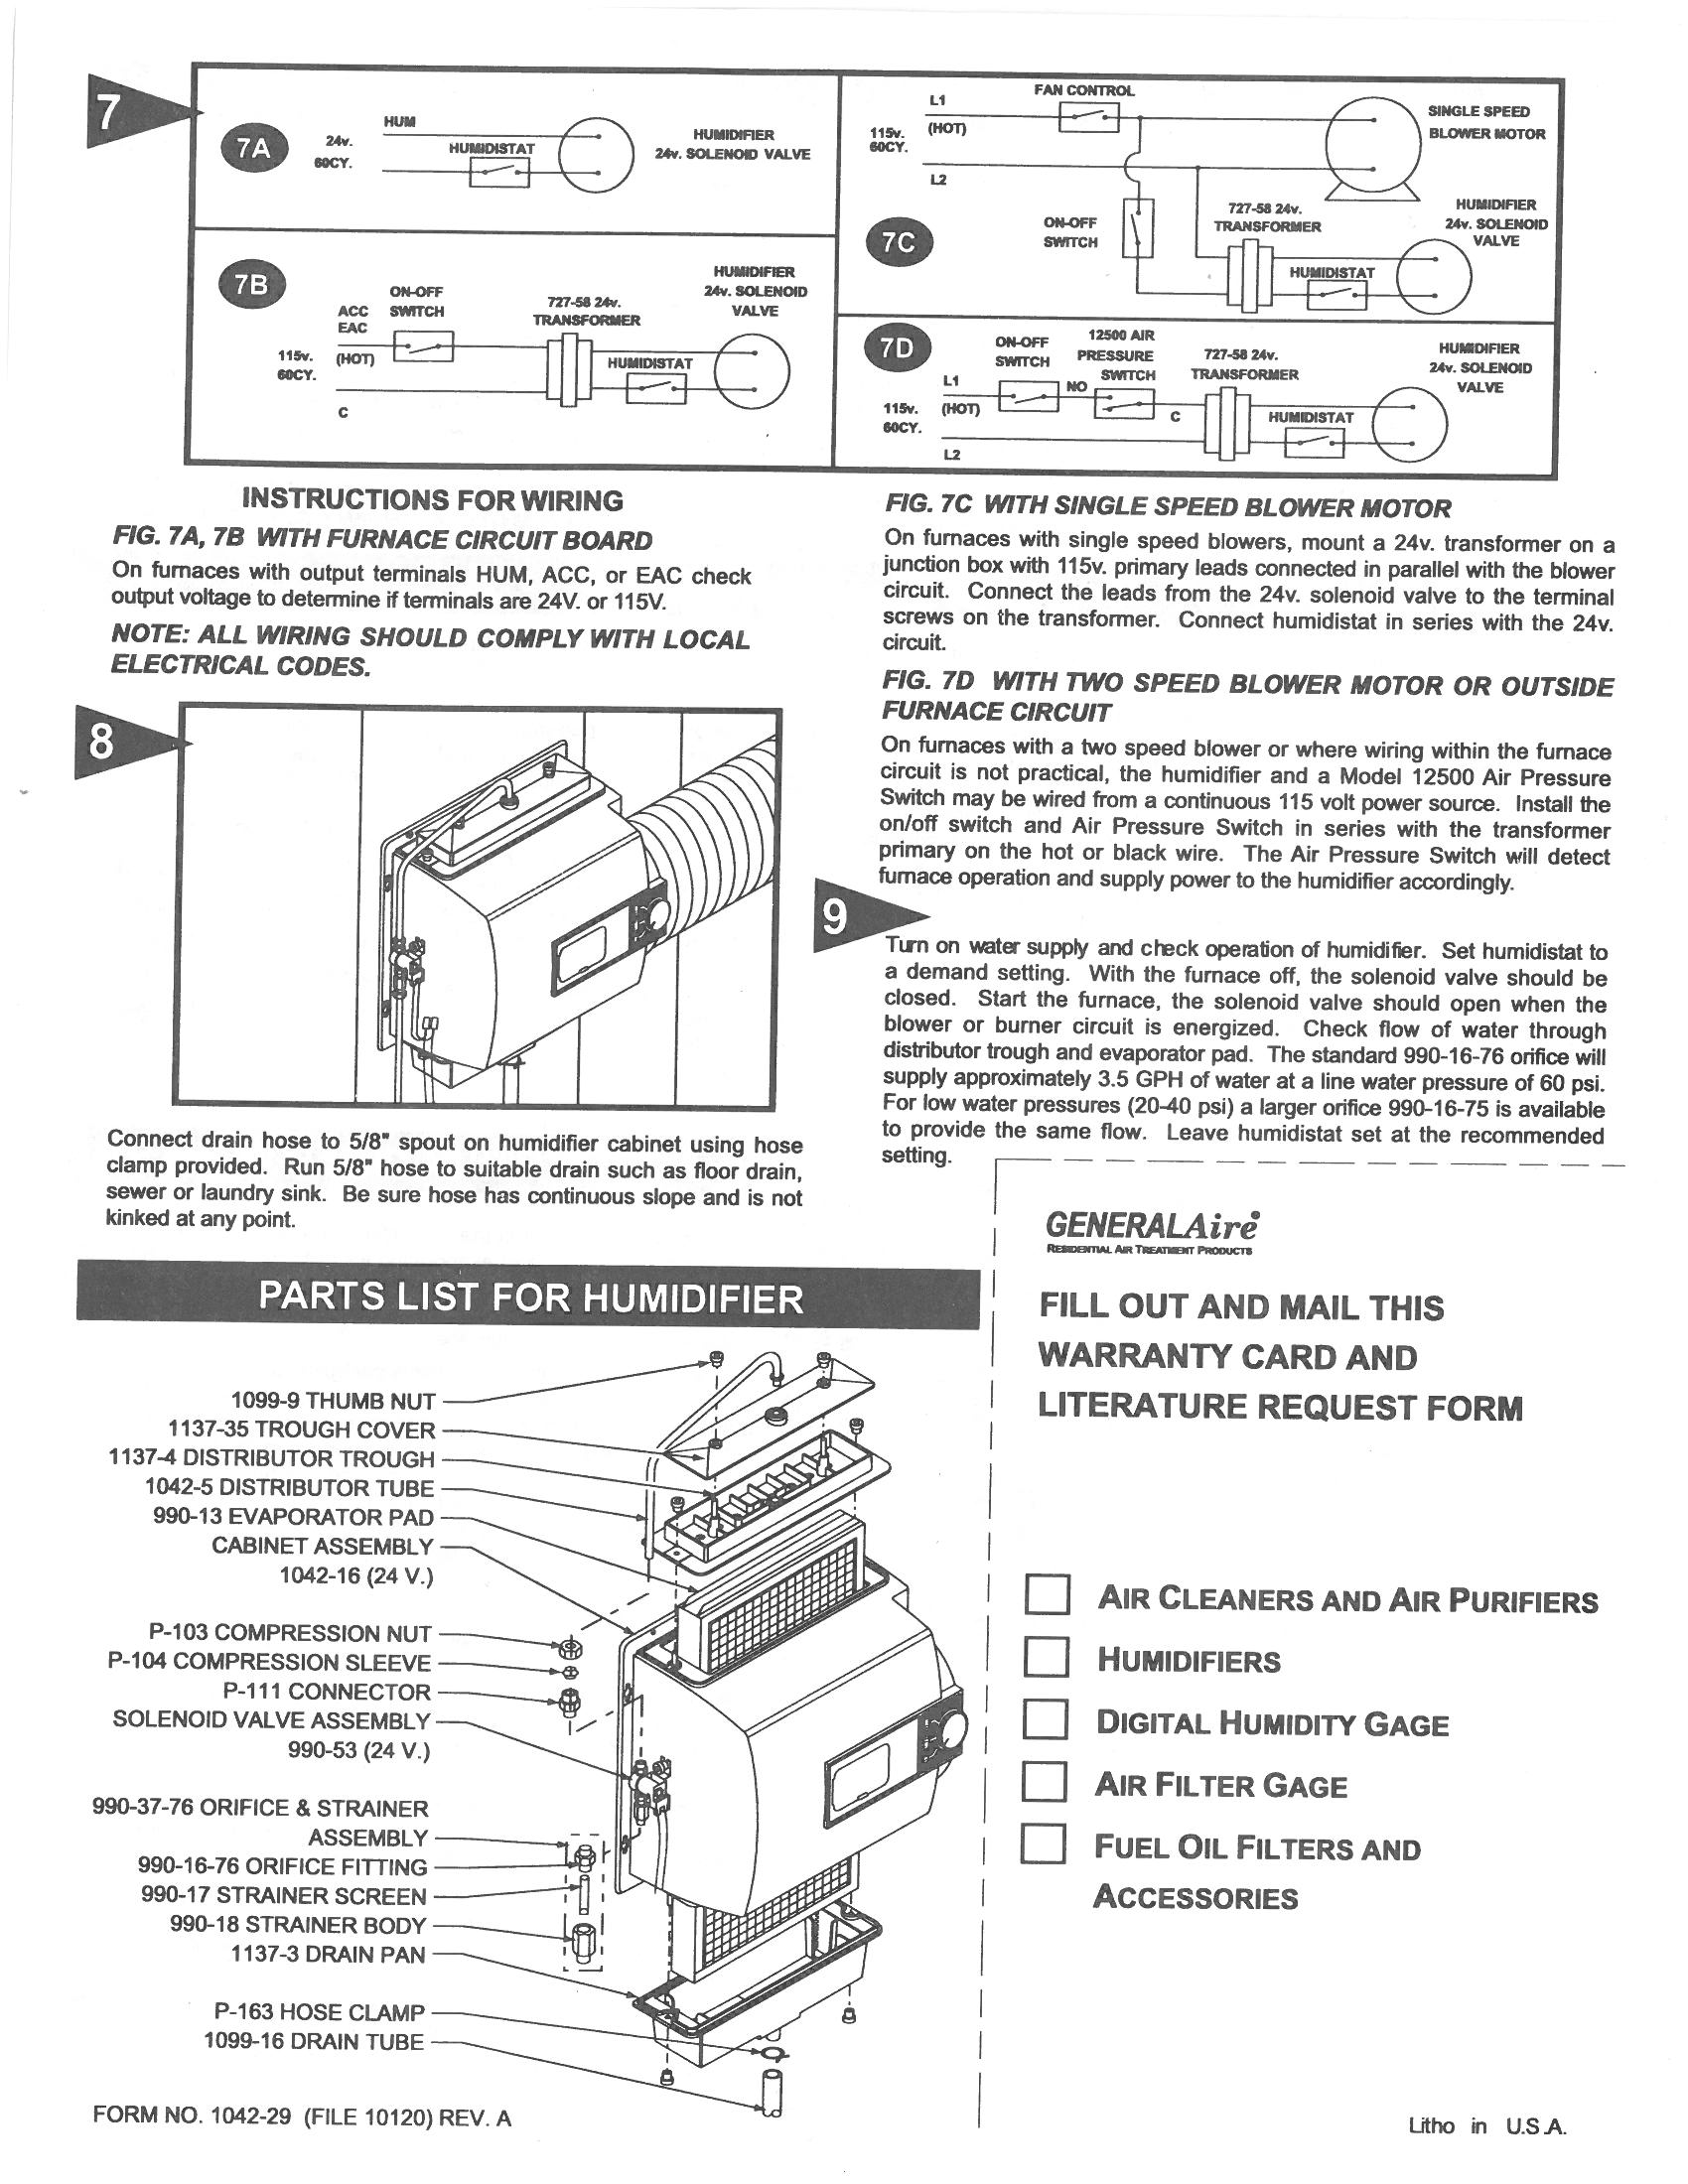 Singer Heat Pump Wiring Diagram : Singer furnace wiring diagram get free image about